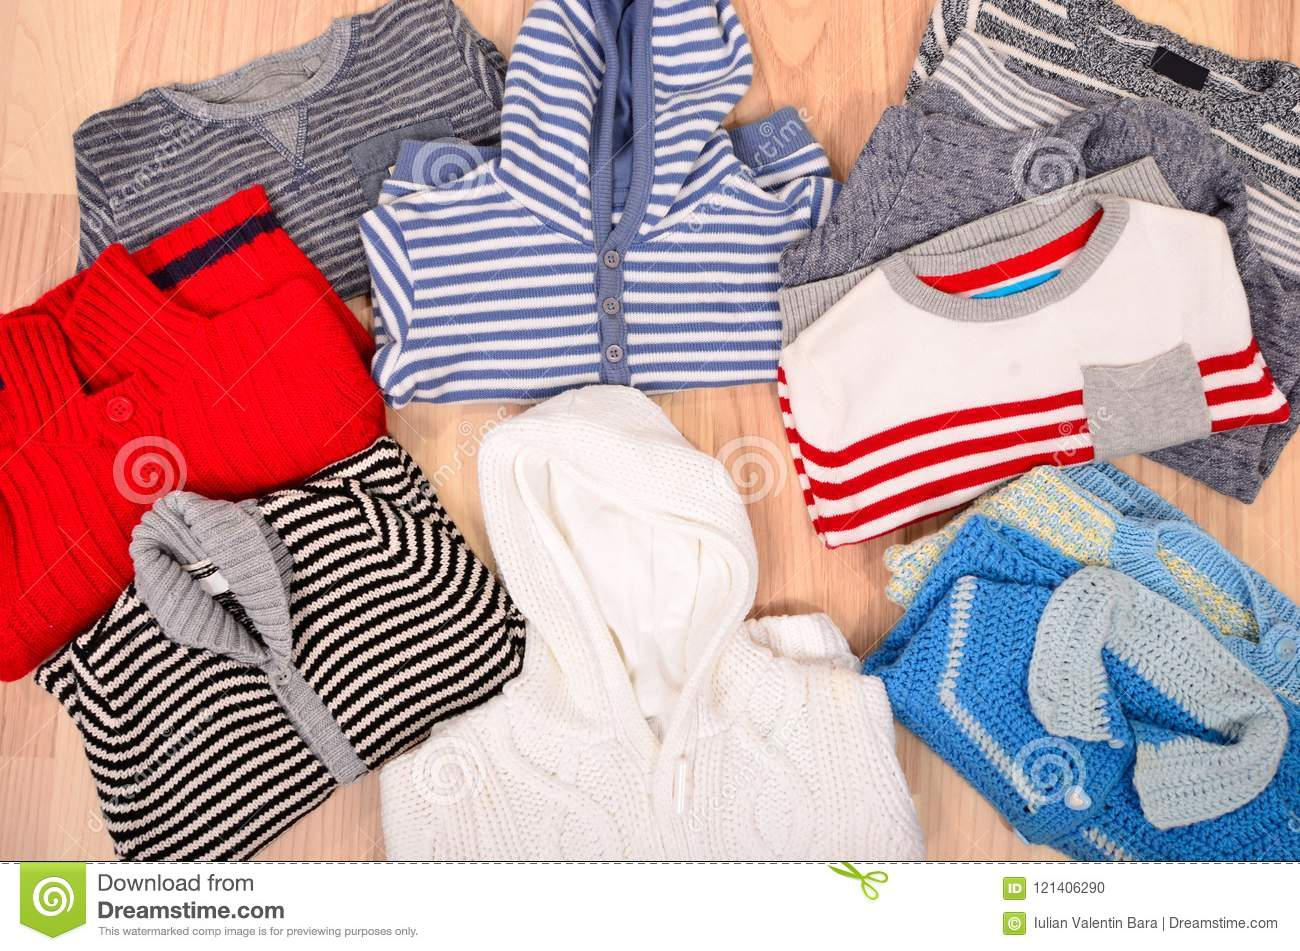 21d4dac51 Winter Baby Clothes Lying On The Floor. Stock Photo - Image of lying ...